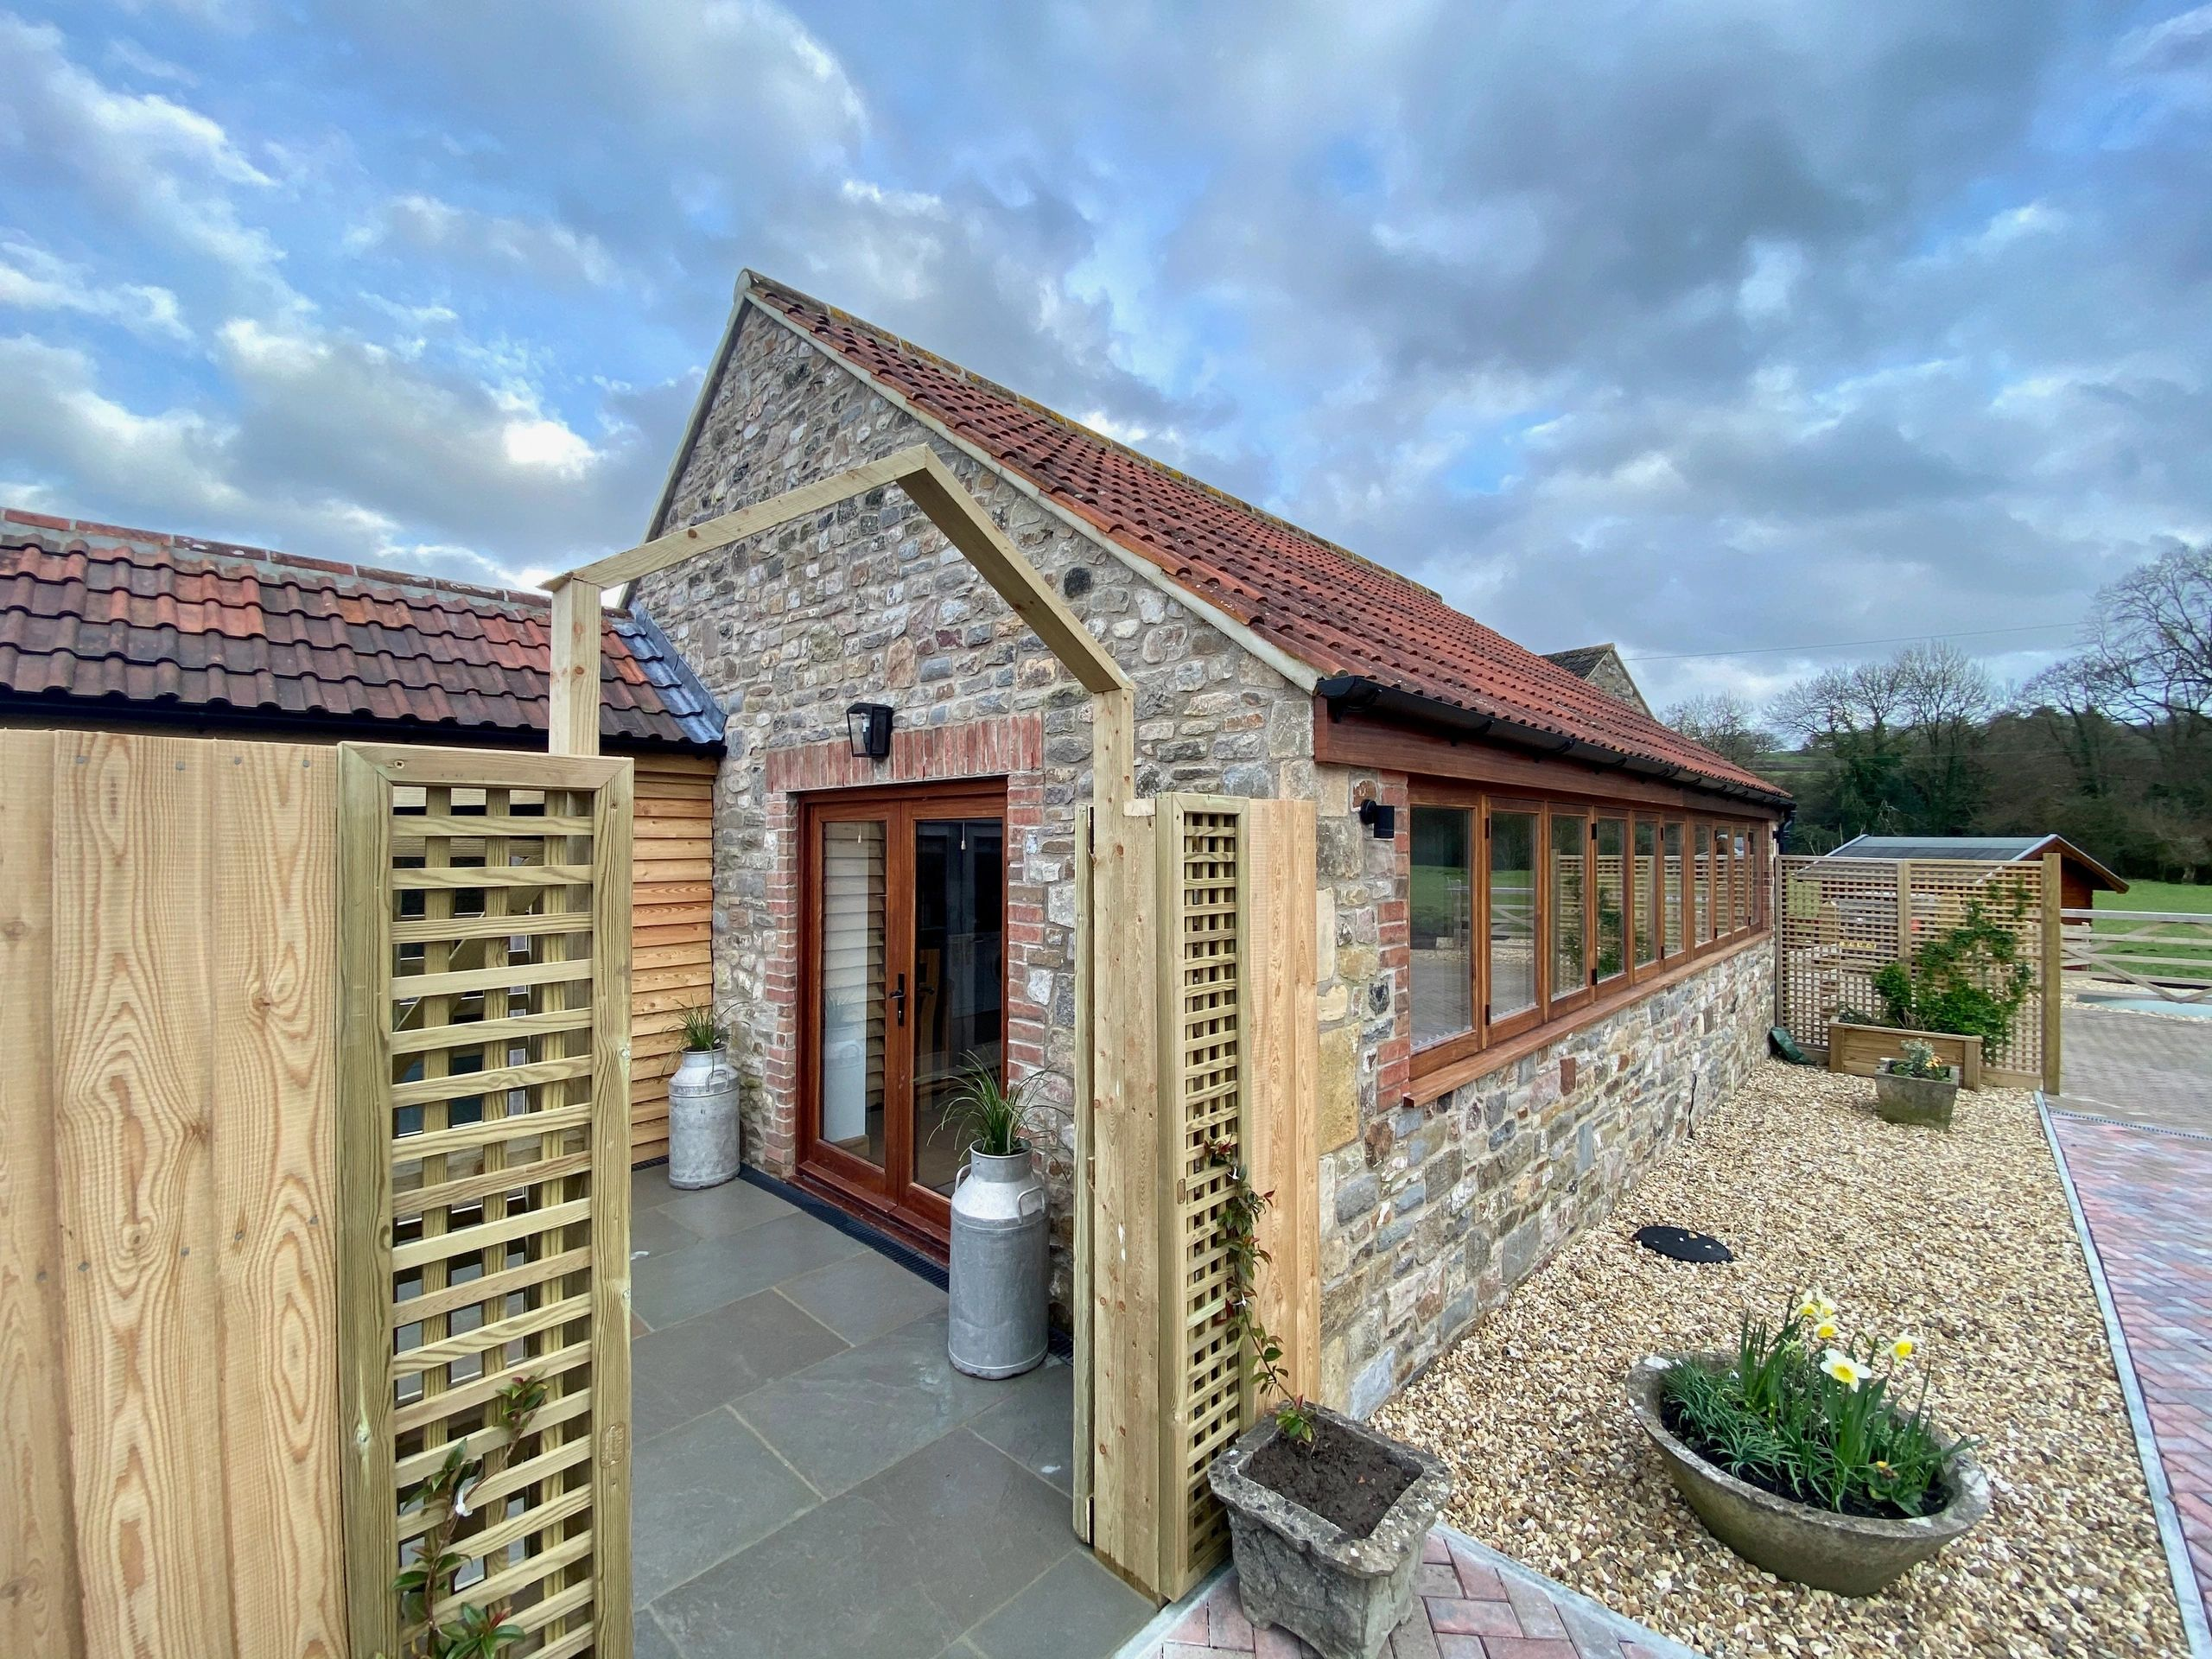 A one bedroom cottage with a courtyard area with patio furniture and a shed for storage.